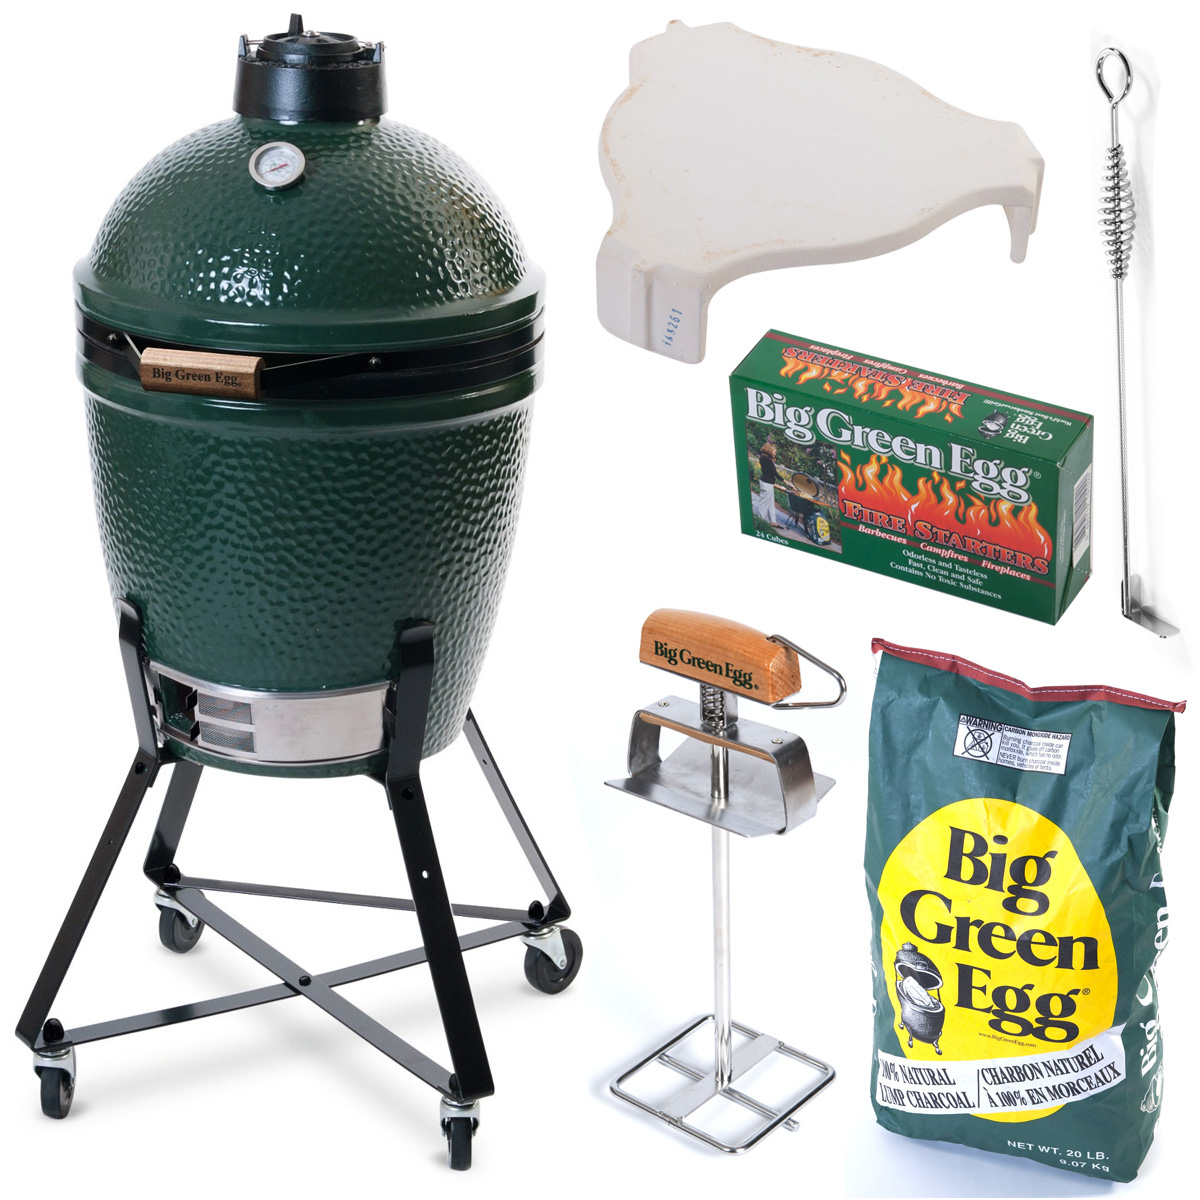 Hiiligrilli Big Green Egg Peruspaketti Medium Plus